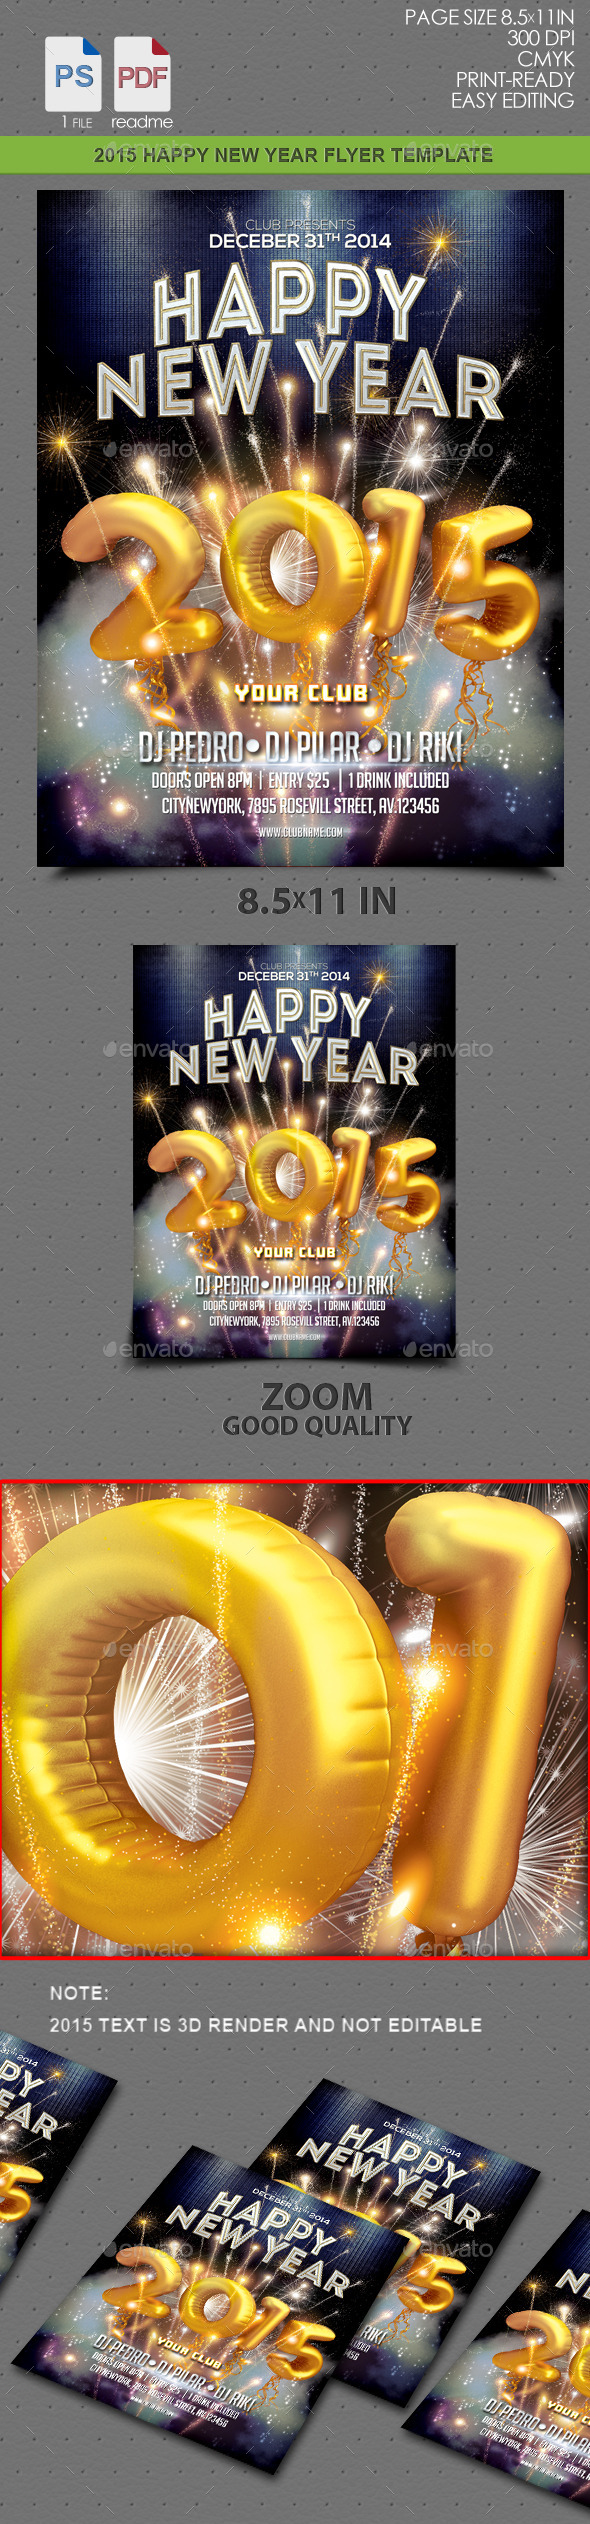 2015 HAPPY NEW YEAR FLYER